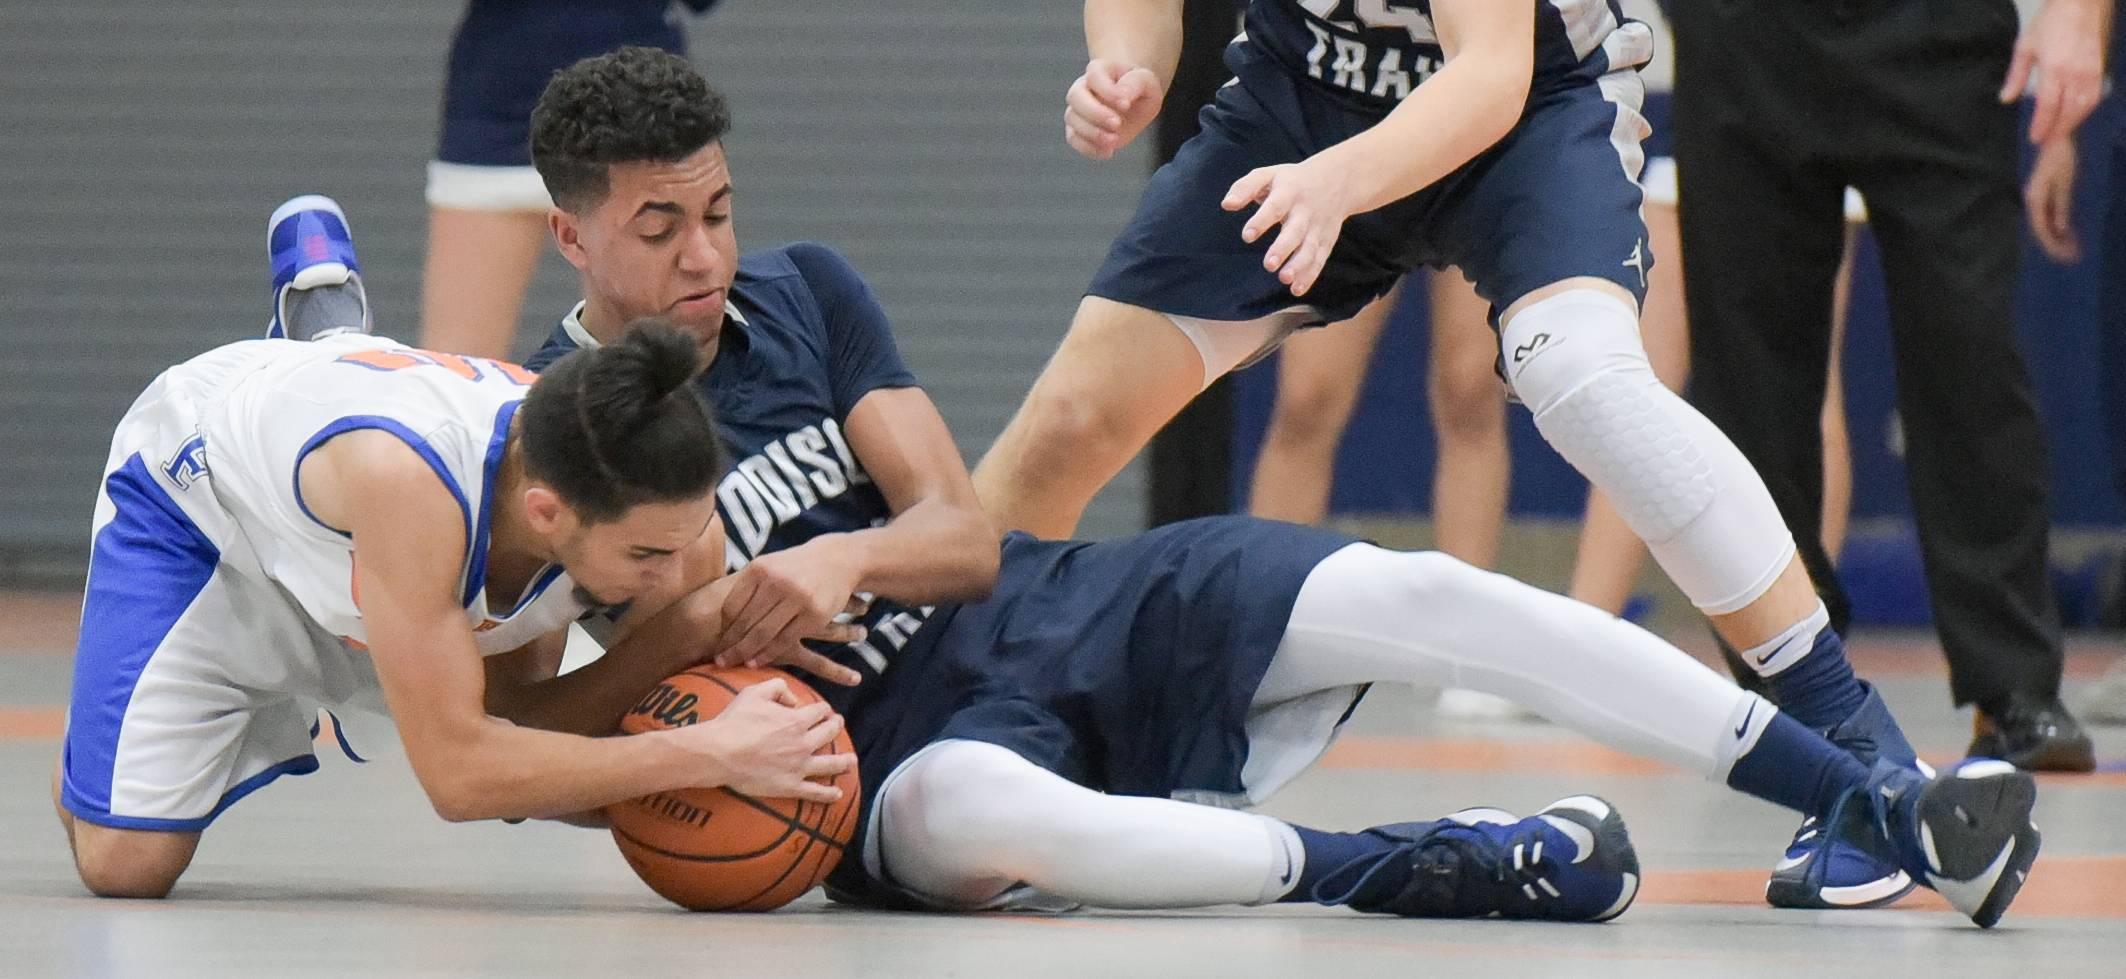 Fenton's Bryan Andrade and Addison Trail's Michael Williams struggle for control of the ball during varsity boys basketball in Bensenville Monday.